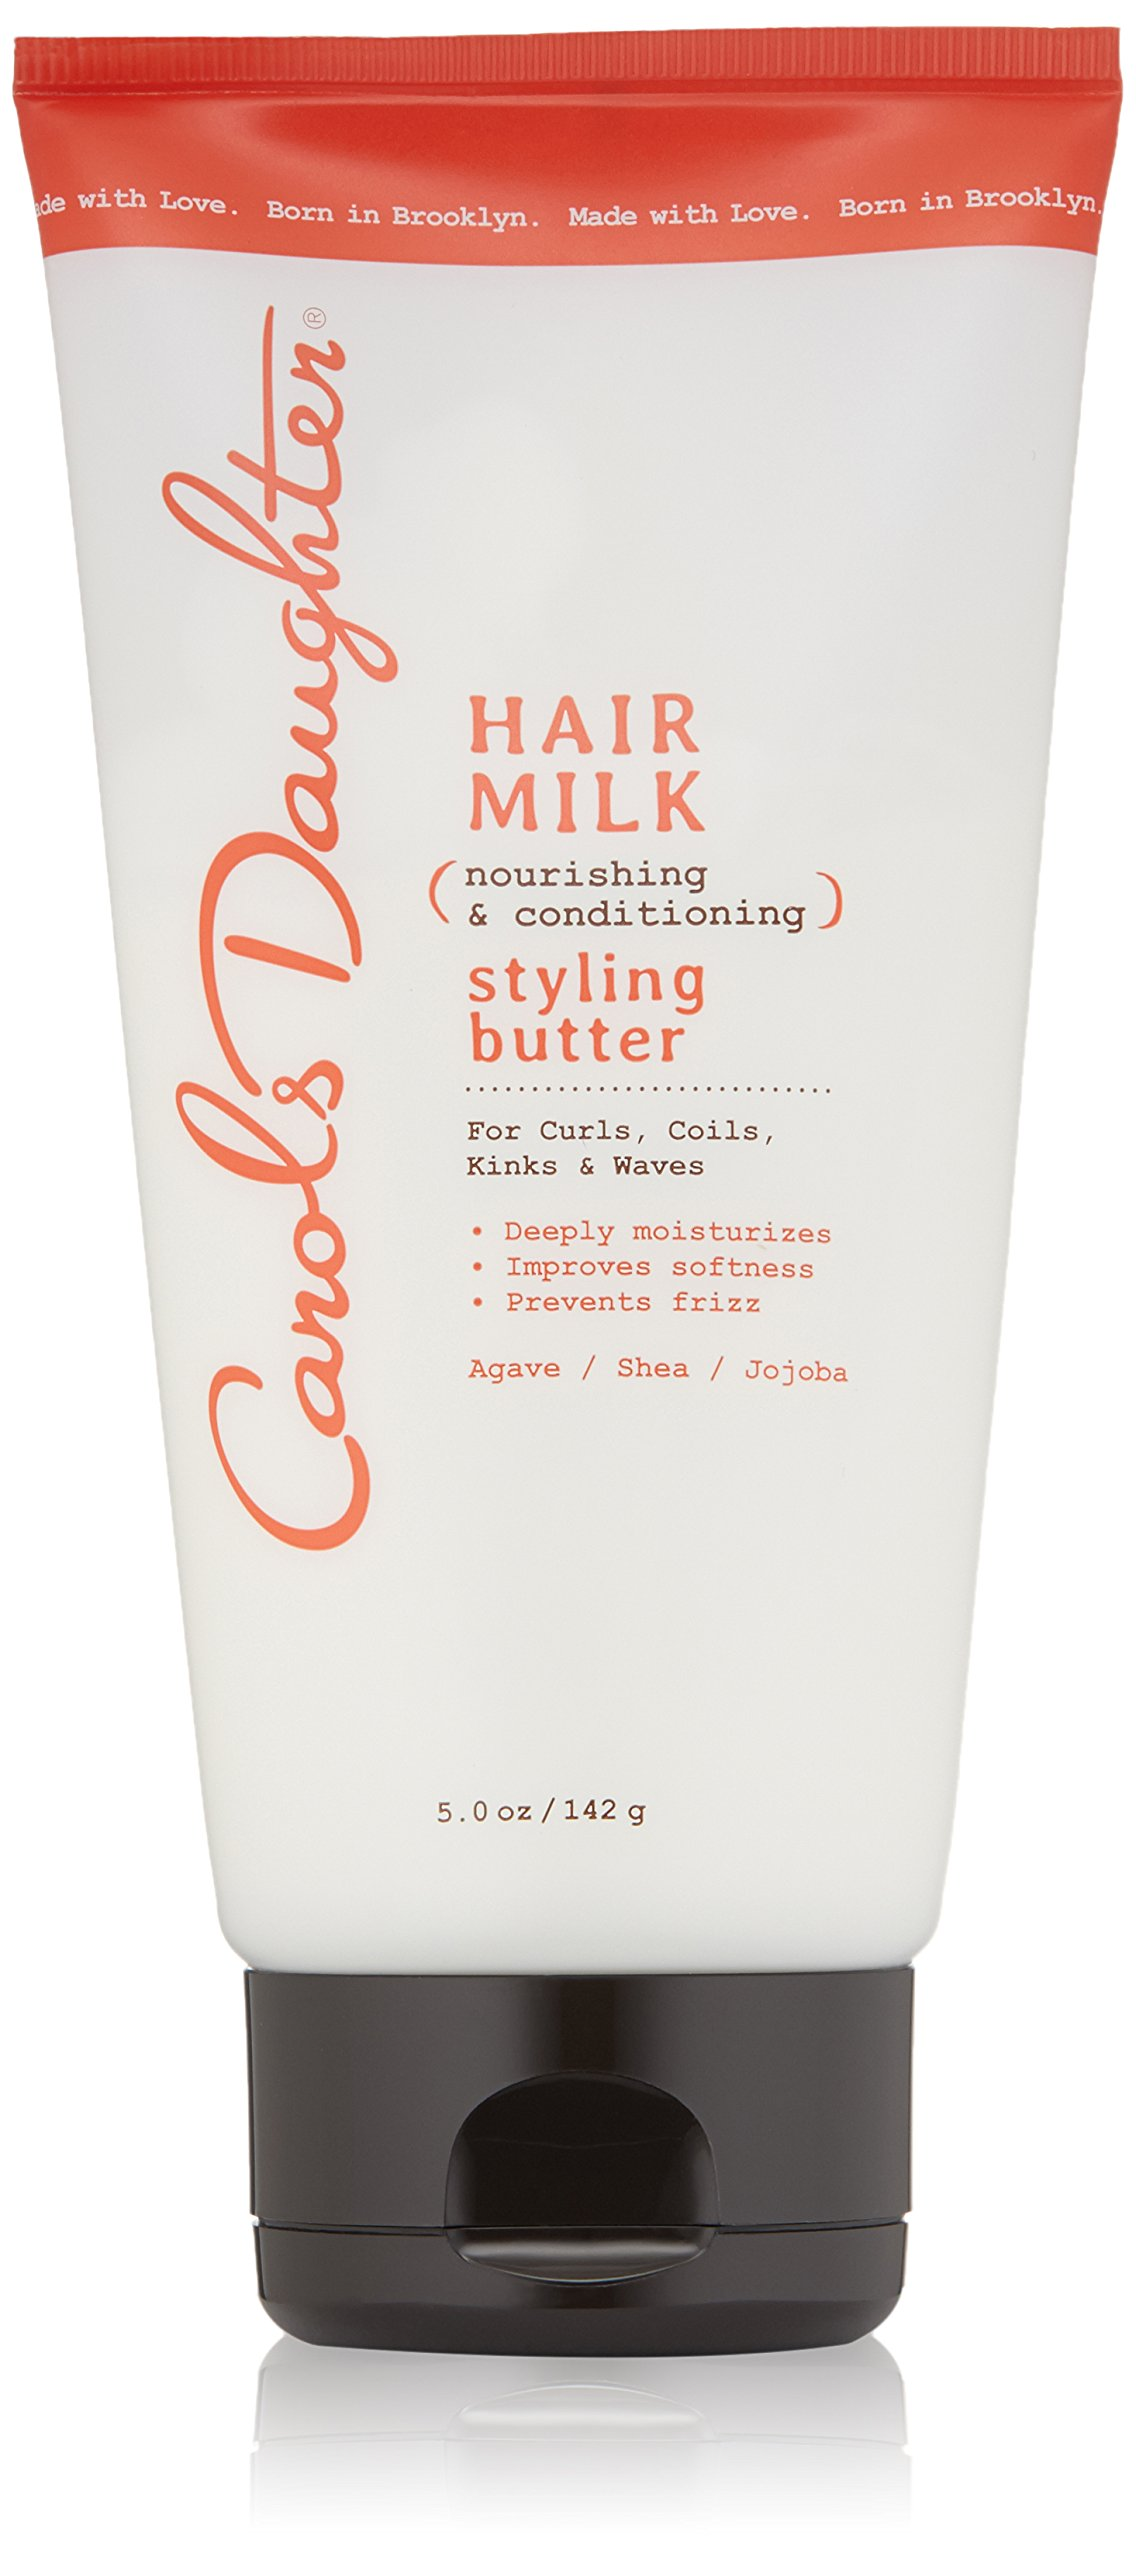 Carol's Daughter Hair Milk Styling Butter, 5 oz